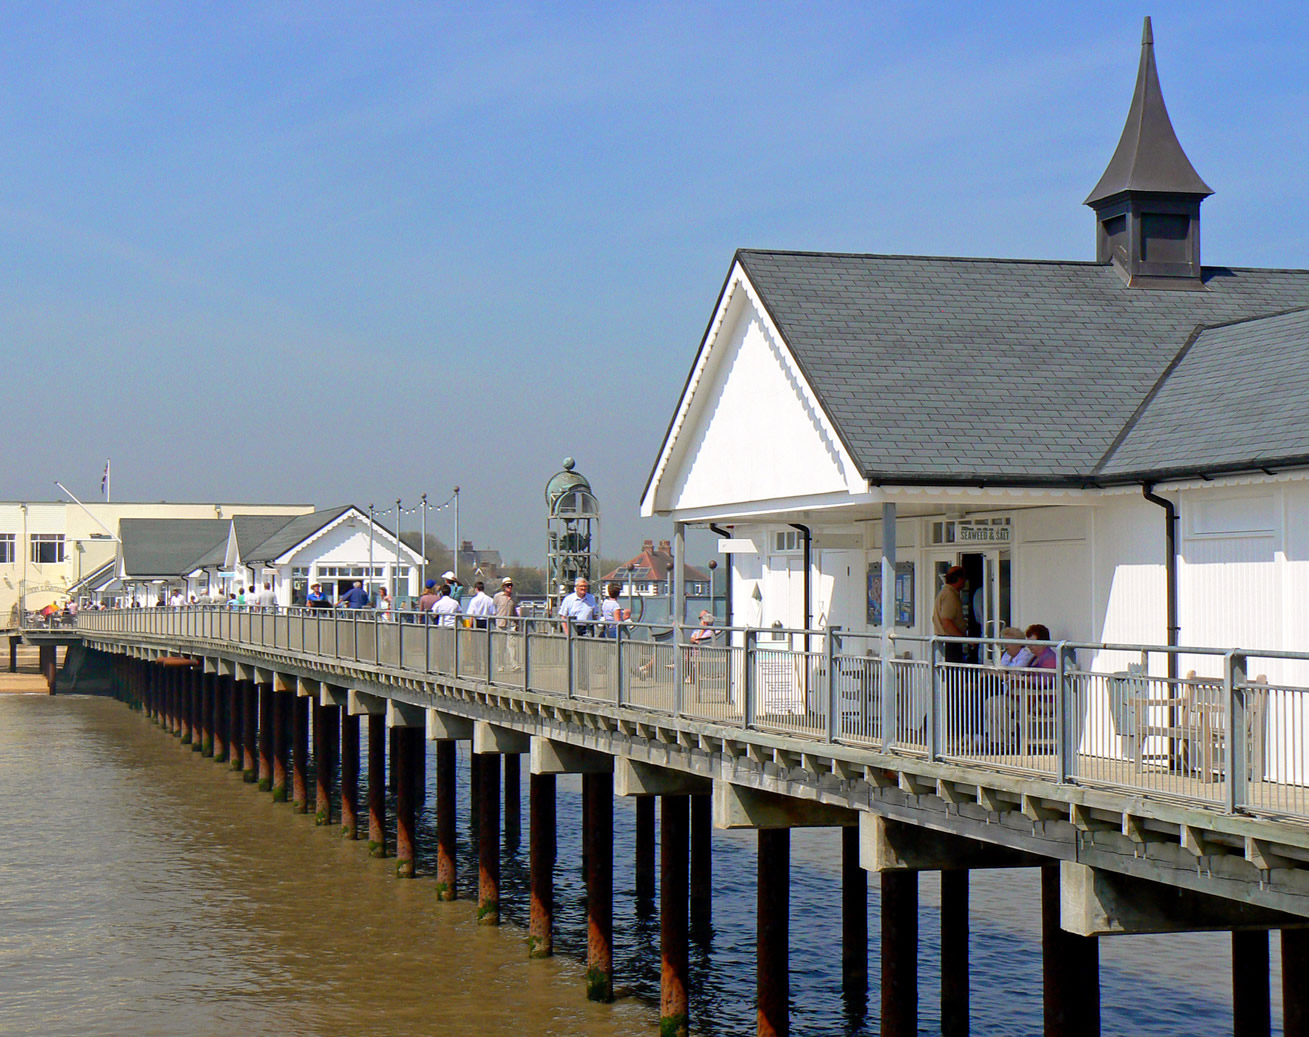 Southwold, Suffolk, including the Pier Lighthouse and Beach Huts